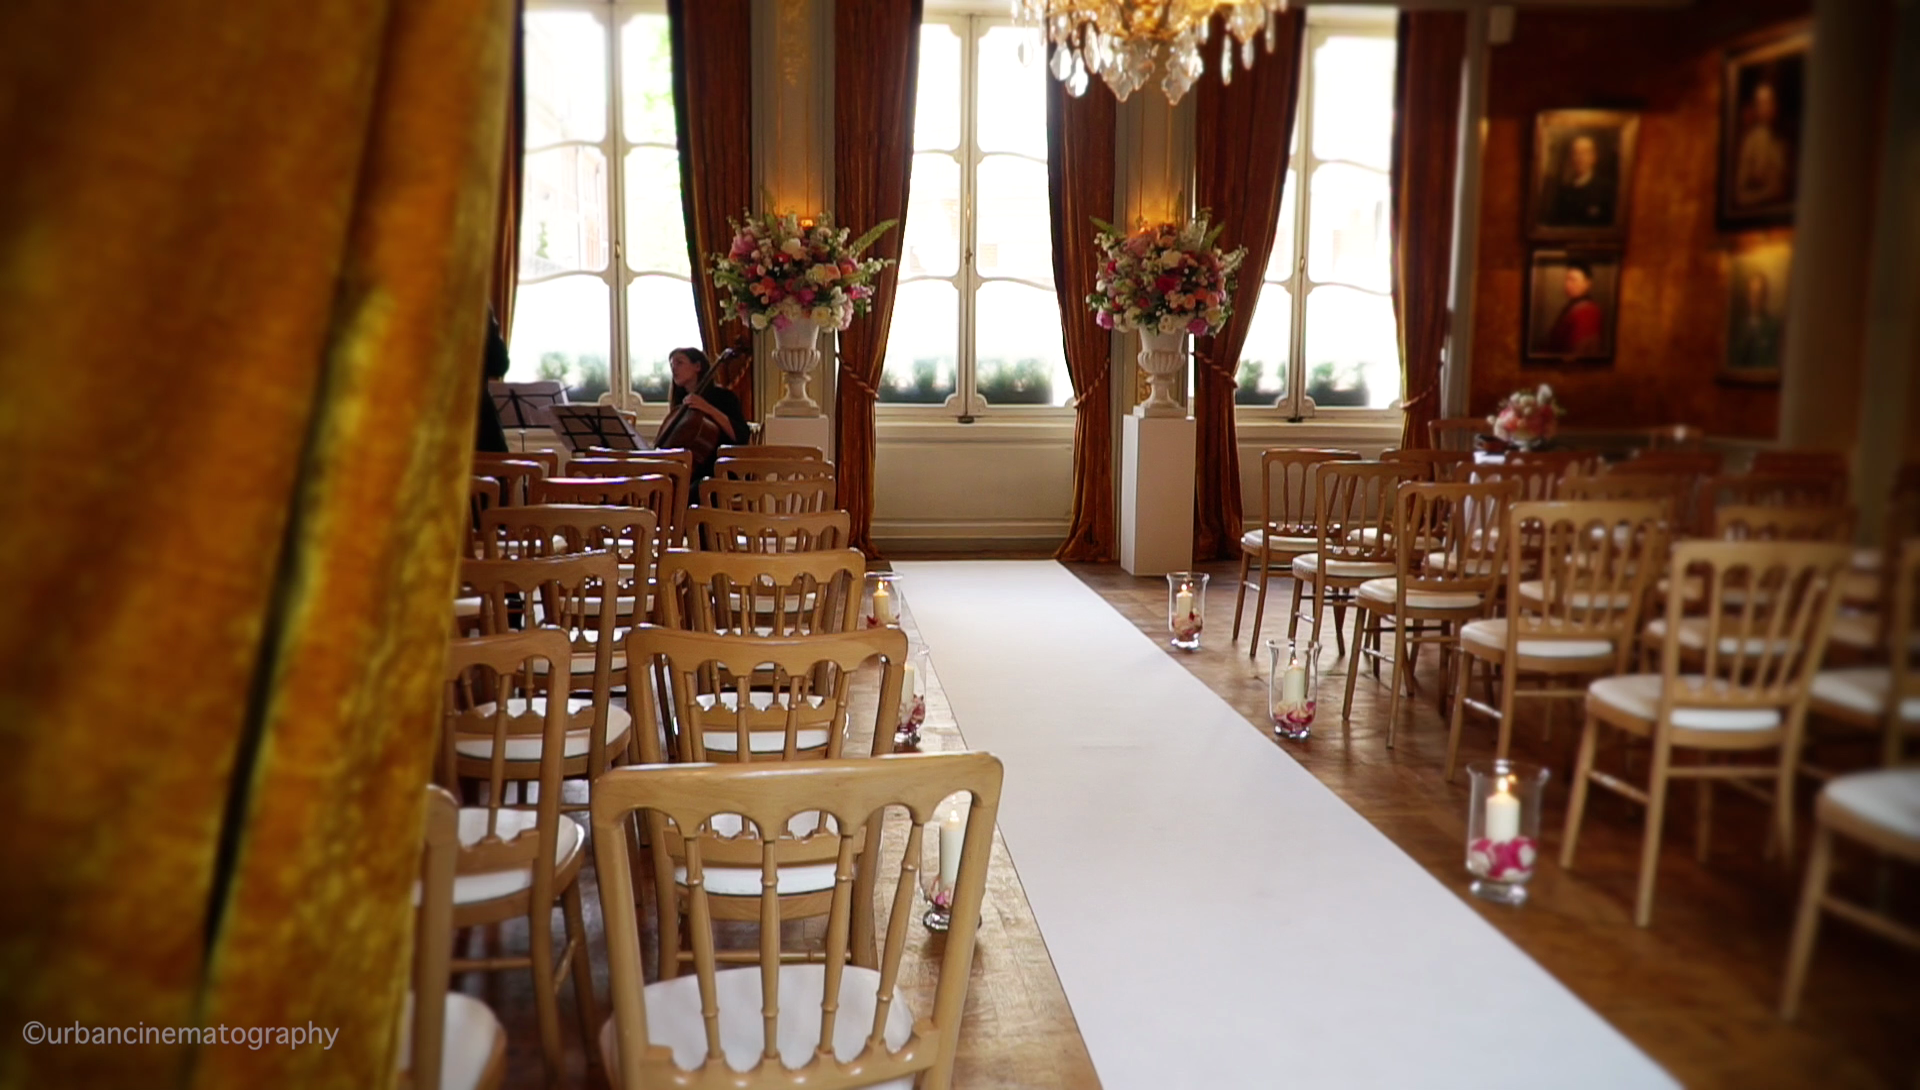 Ceremony Wedding Videography The Savile Club London